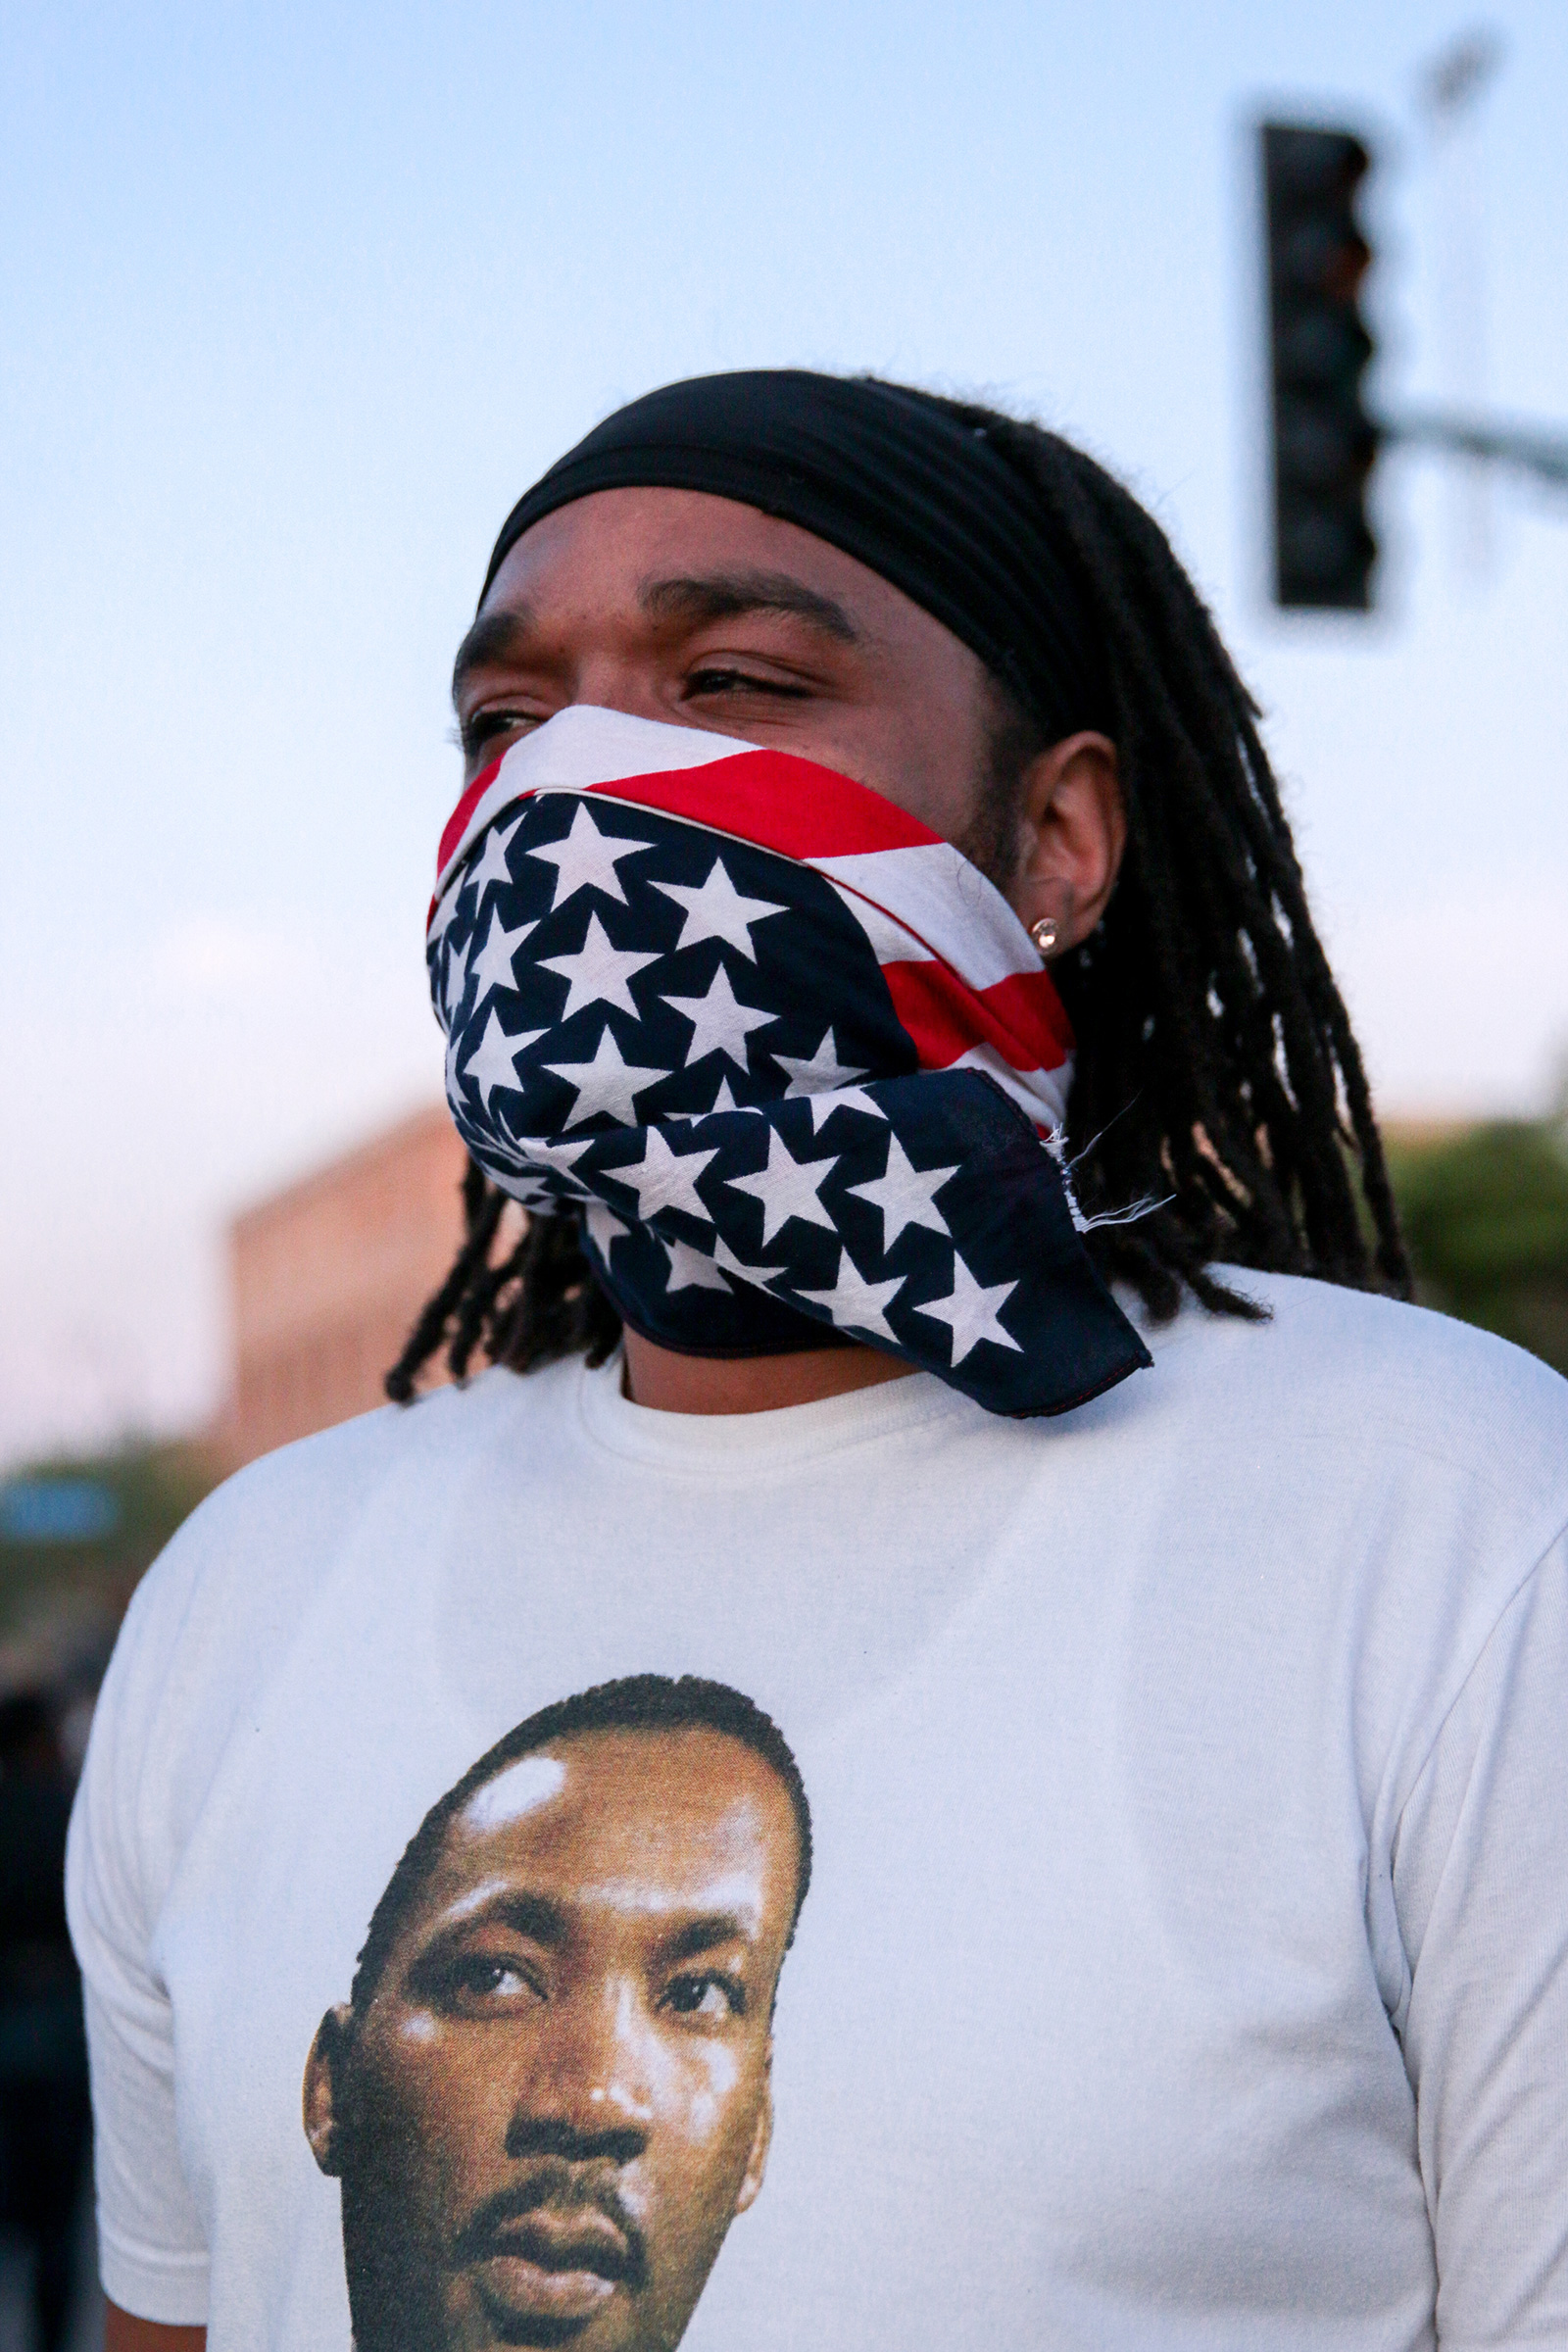 A protester near the 3rd precinct in Minneapolis on May 28.